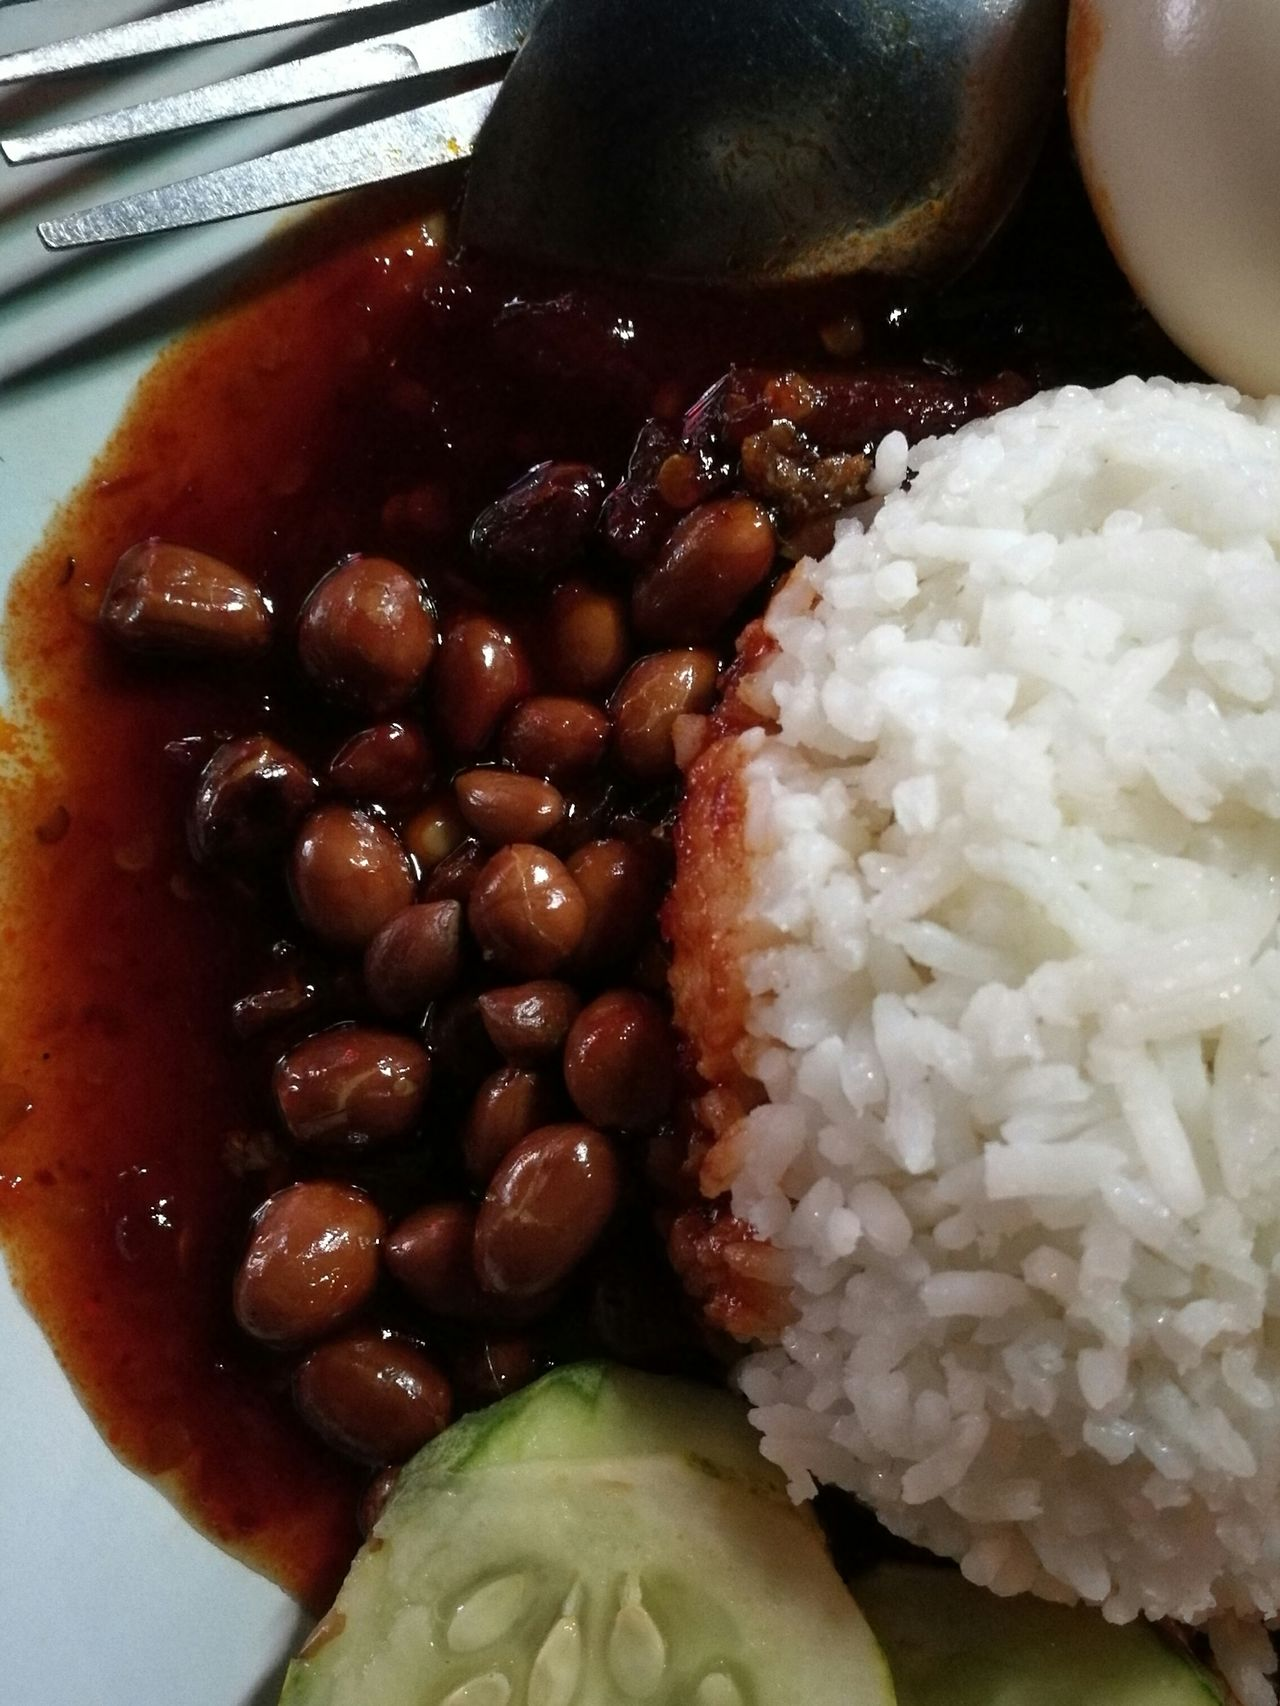 Close-up Food Nasilemak Nasi Lemak Malaysia Friedgroundnuts Boiledegg Coconut Milk Cooked Rice Foodphotography Foodie Foodstagram Foodgasm Foodpic